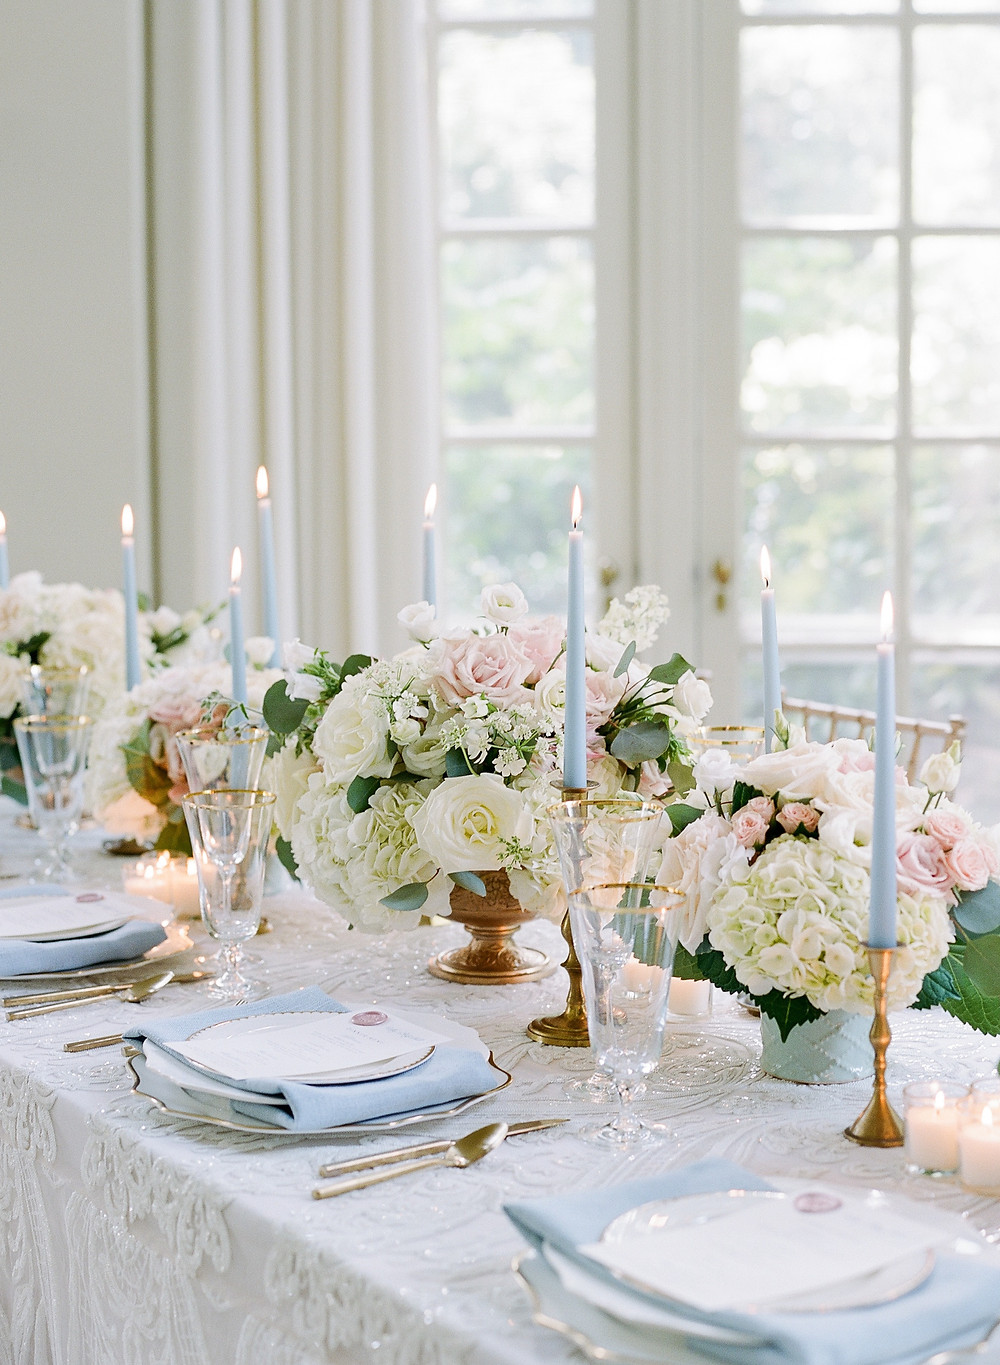 SoHo Event Design wedding planner Duke Mansion wedding reception event design north carolina wedding planner